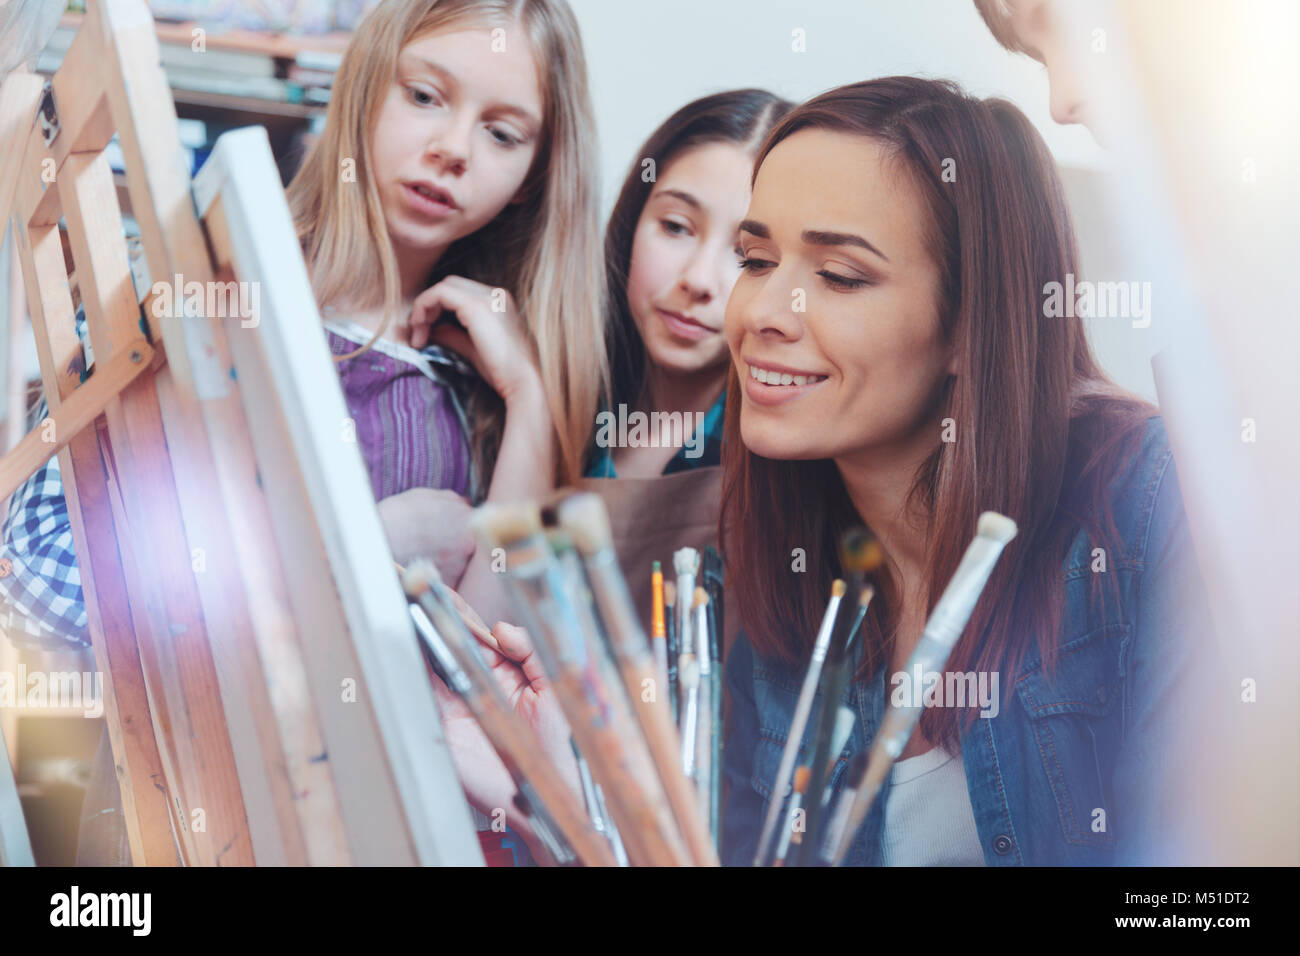 Talented kids looking at their teacher of painting working - Stock Image